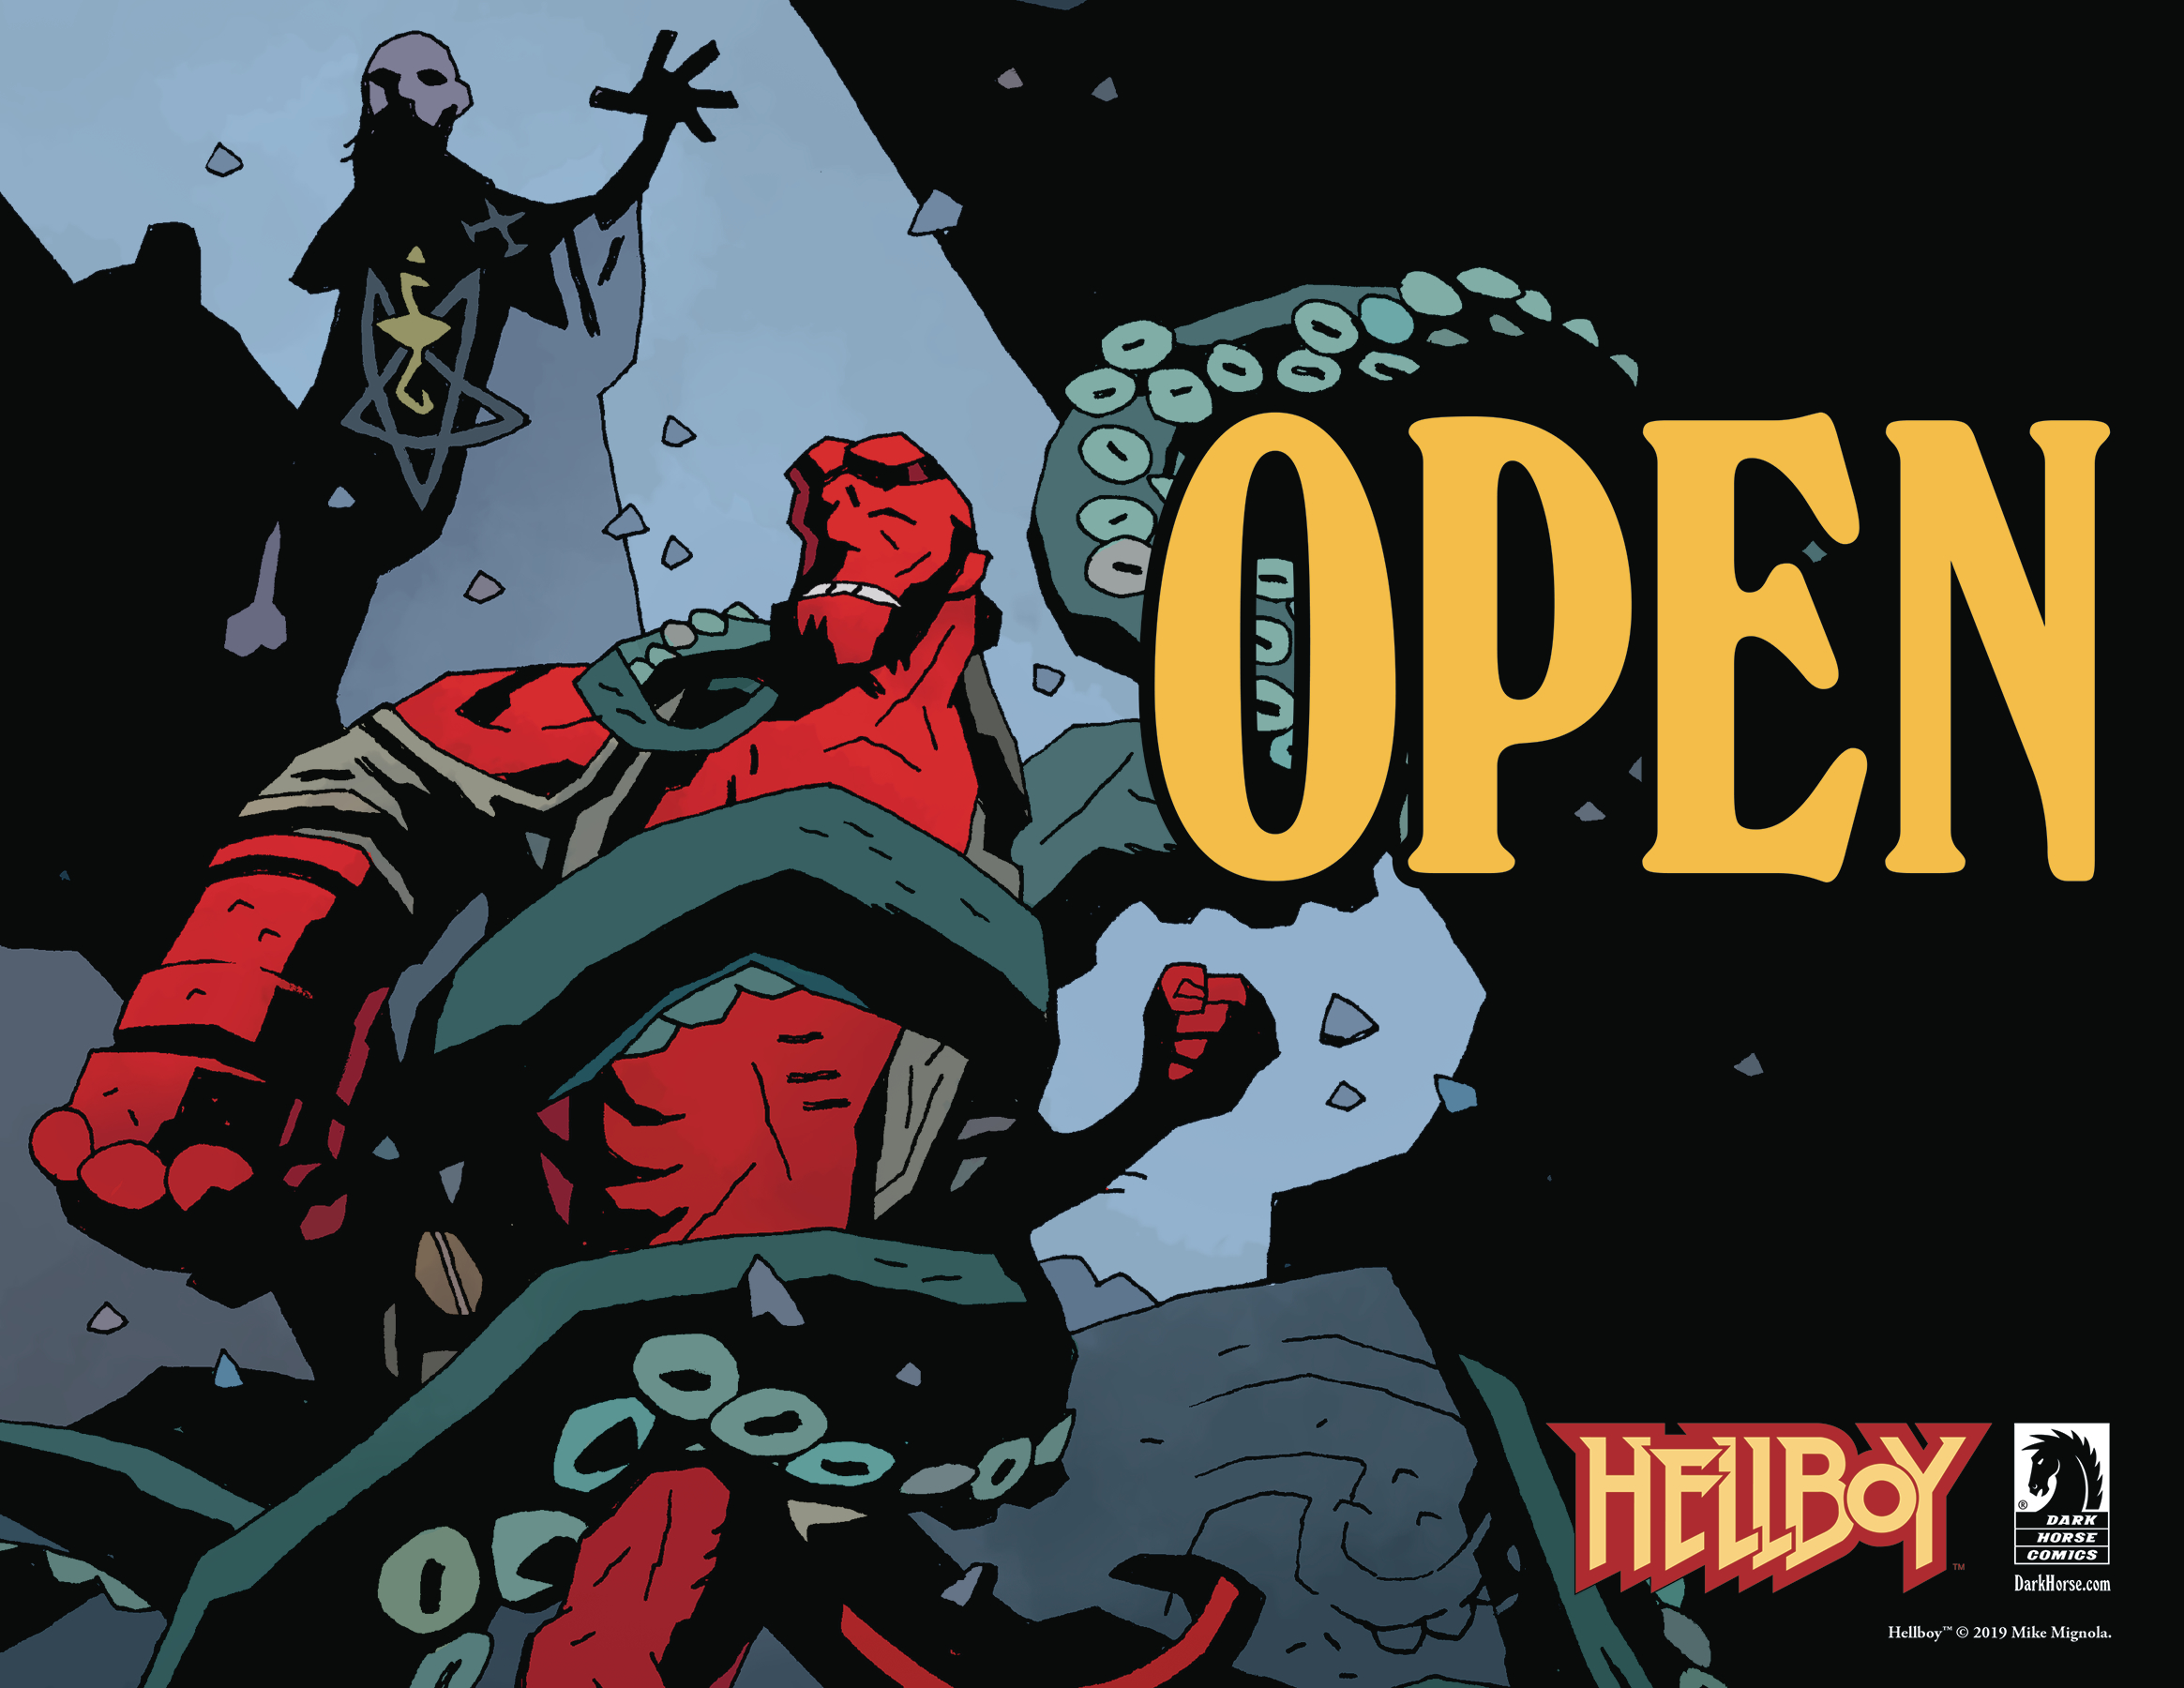 HELLBOY DAY 2019 OPEN CLOSE SIGN